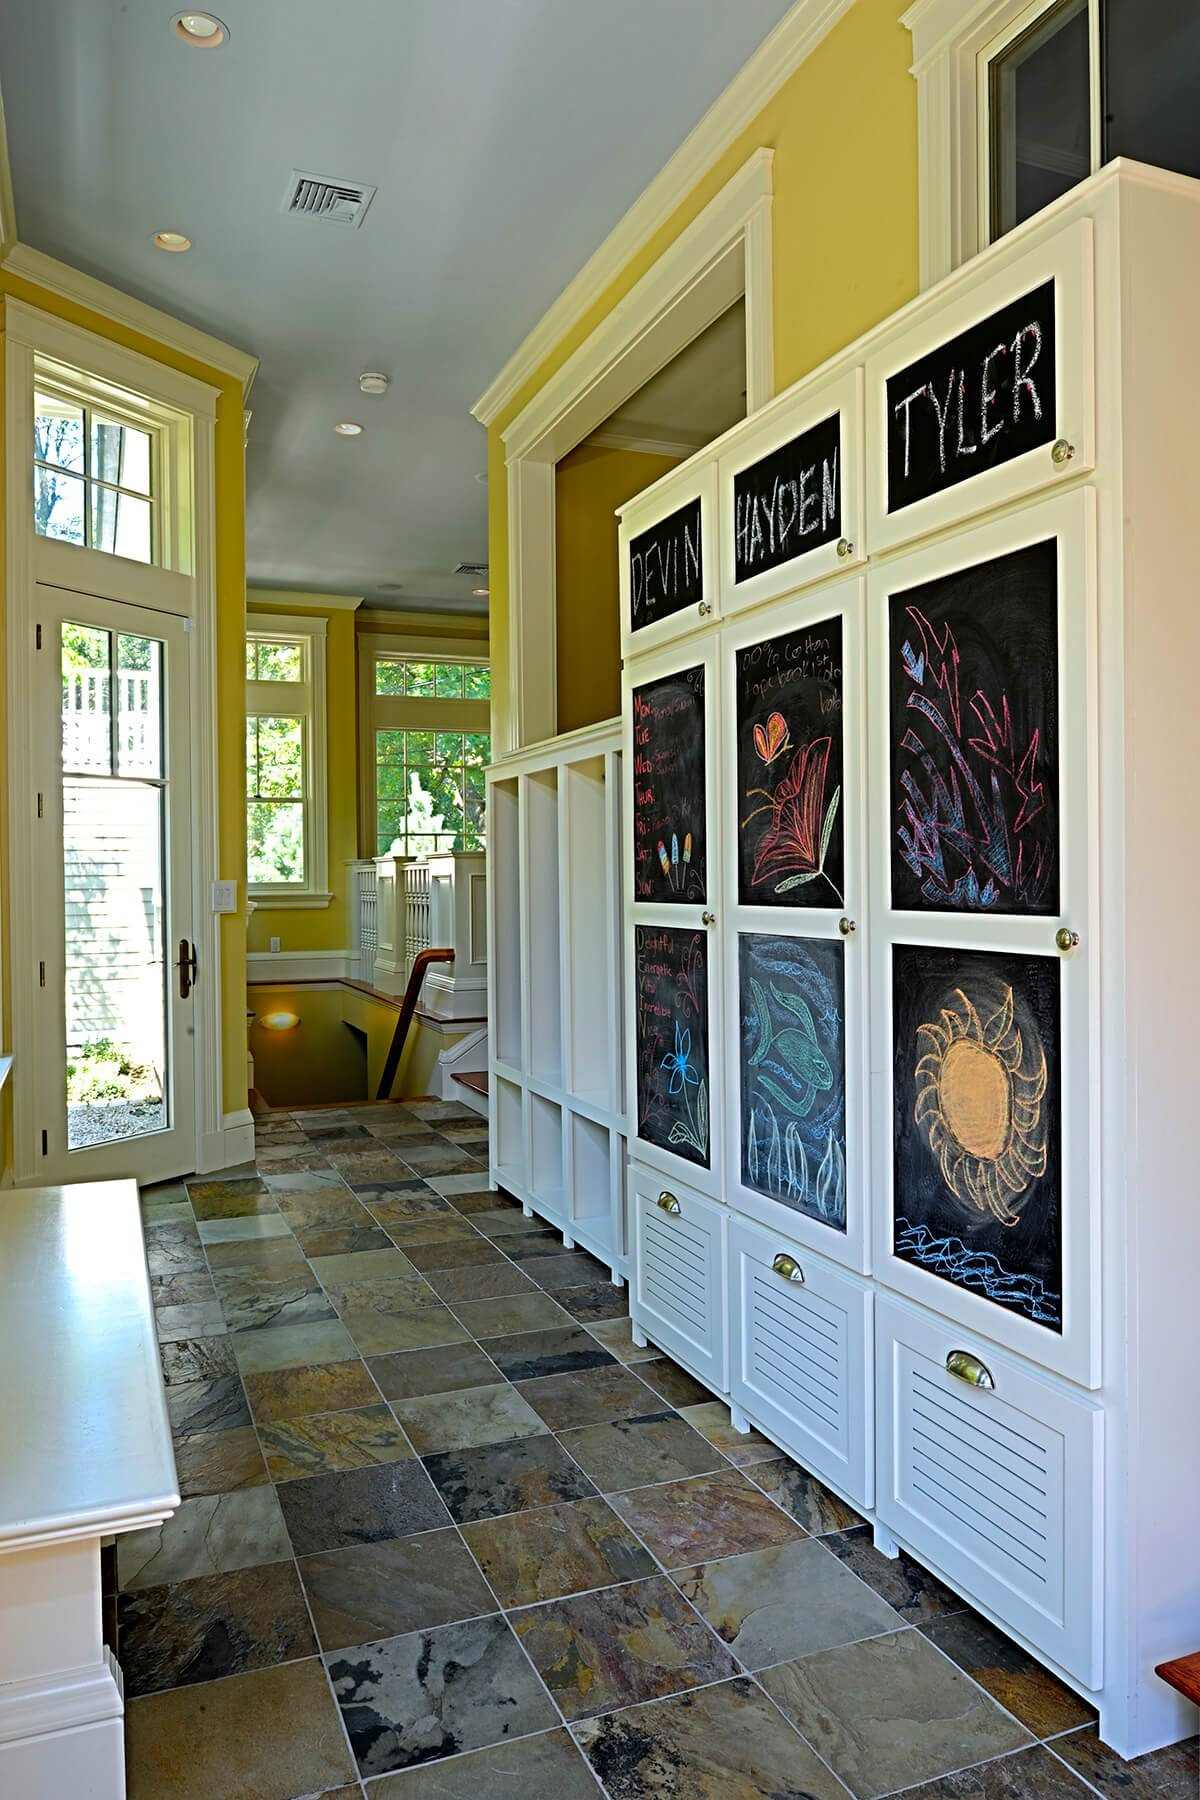 9 Chalkboards for Personalized Closets Simphome com